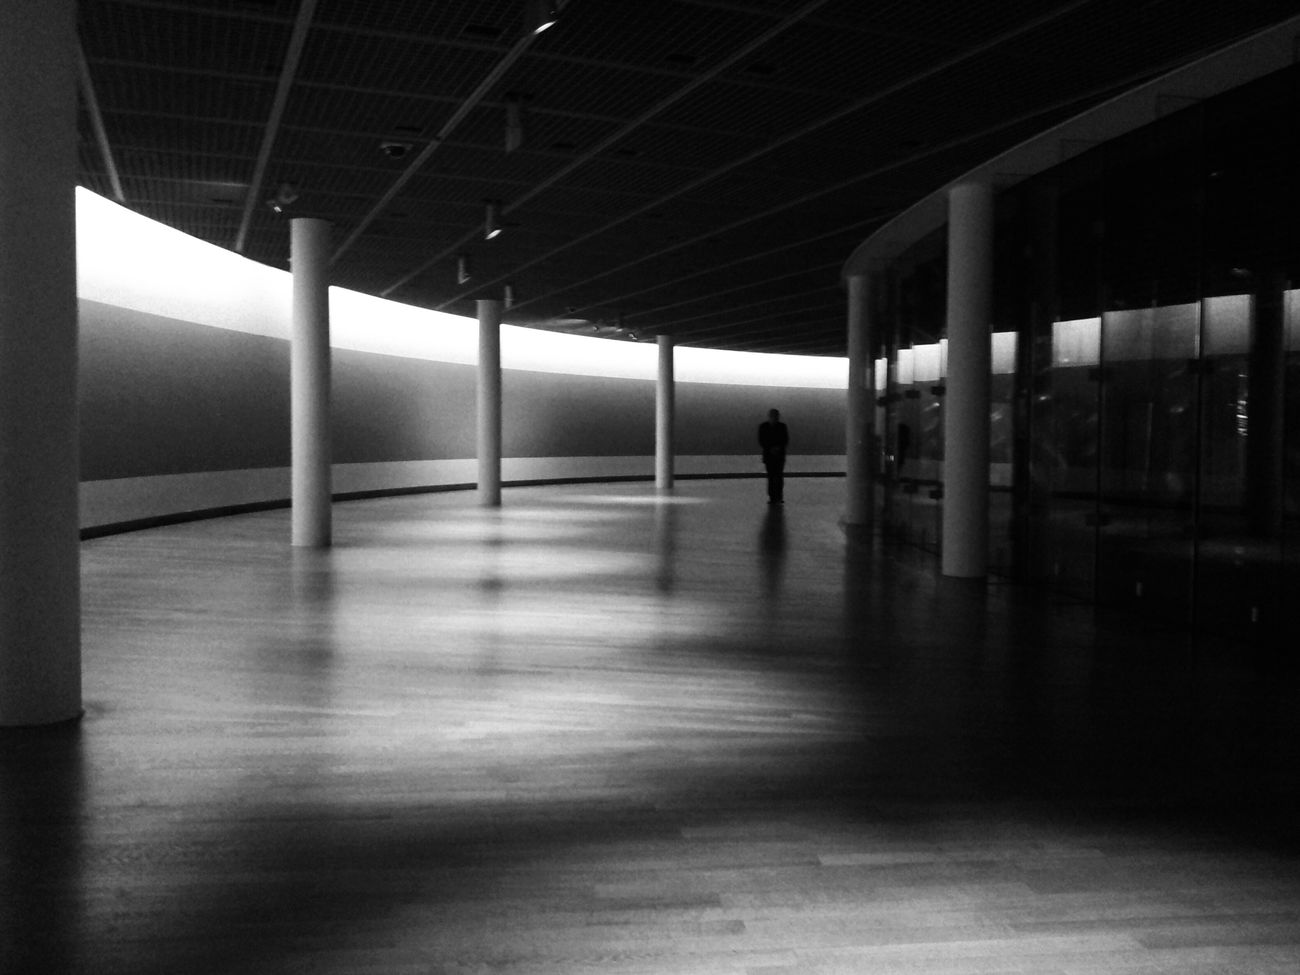 Alone TheMinimals (less Edit Juxt Photography) Black And White StreetsWithPeople Streetphotography